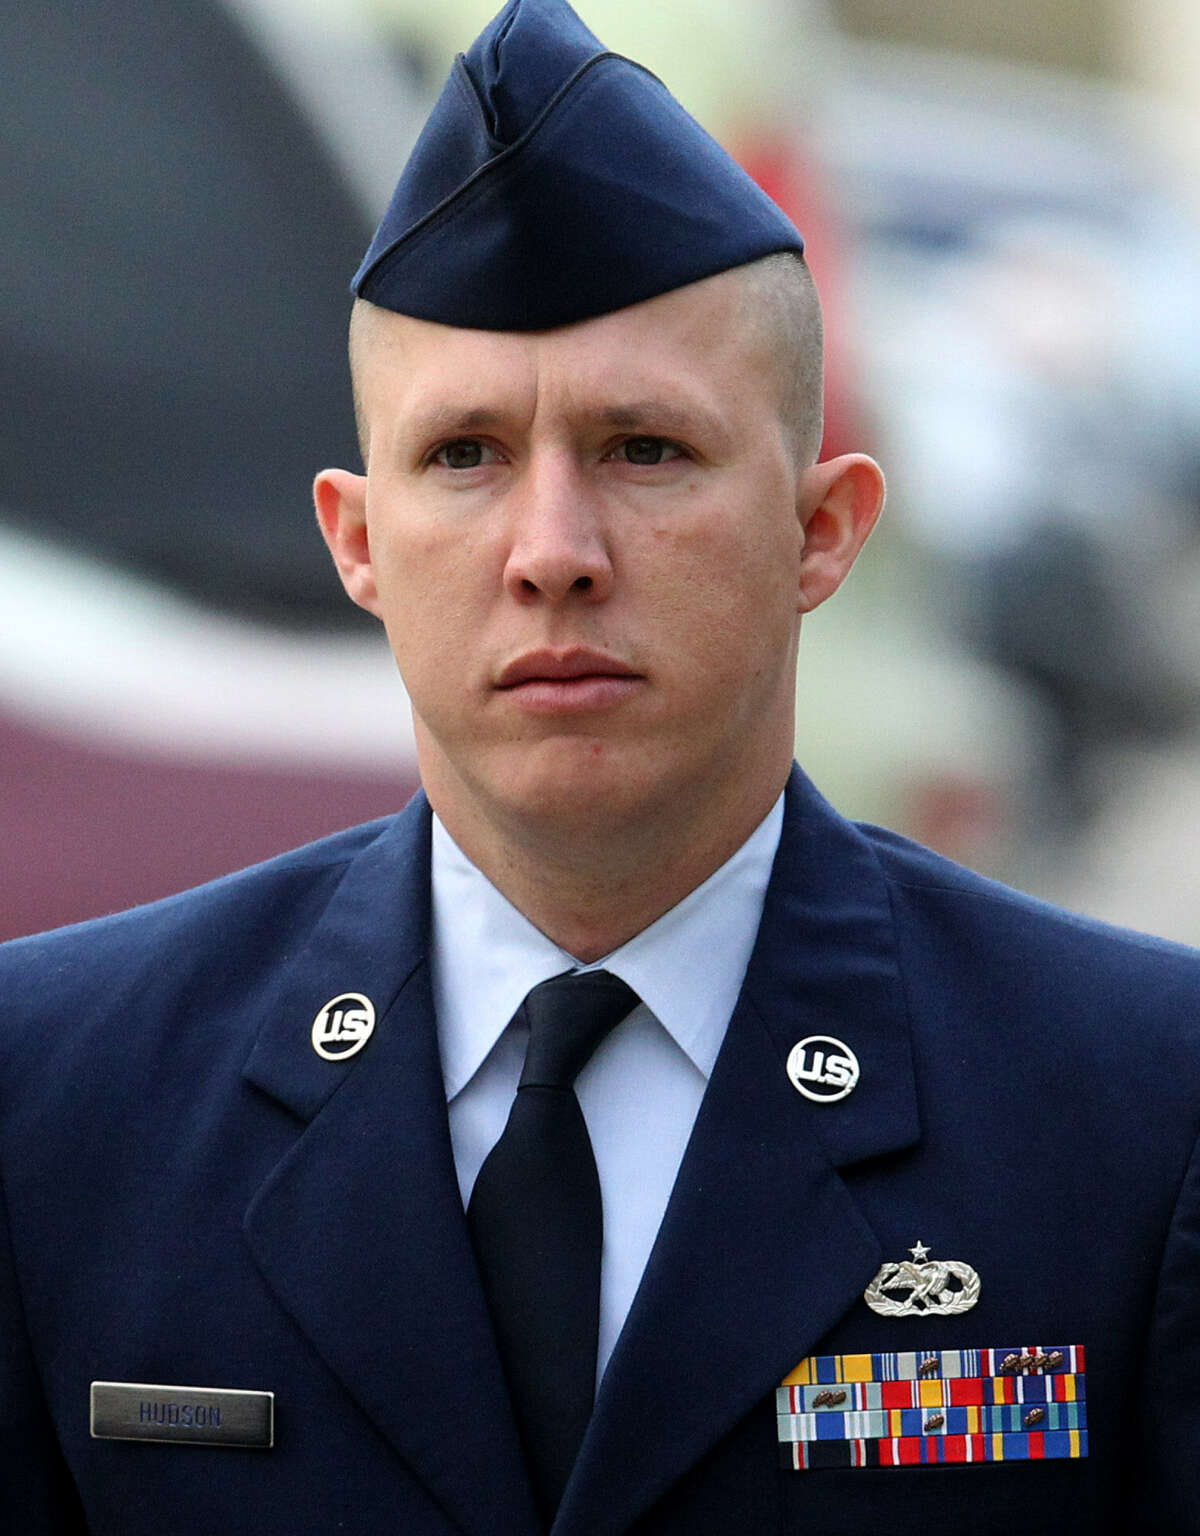 """Staff Sgt. Robert Hudson asked the judge to """"have mercy on my family. My family needs me."""""""